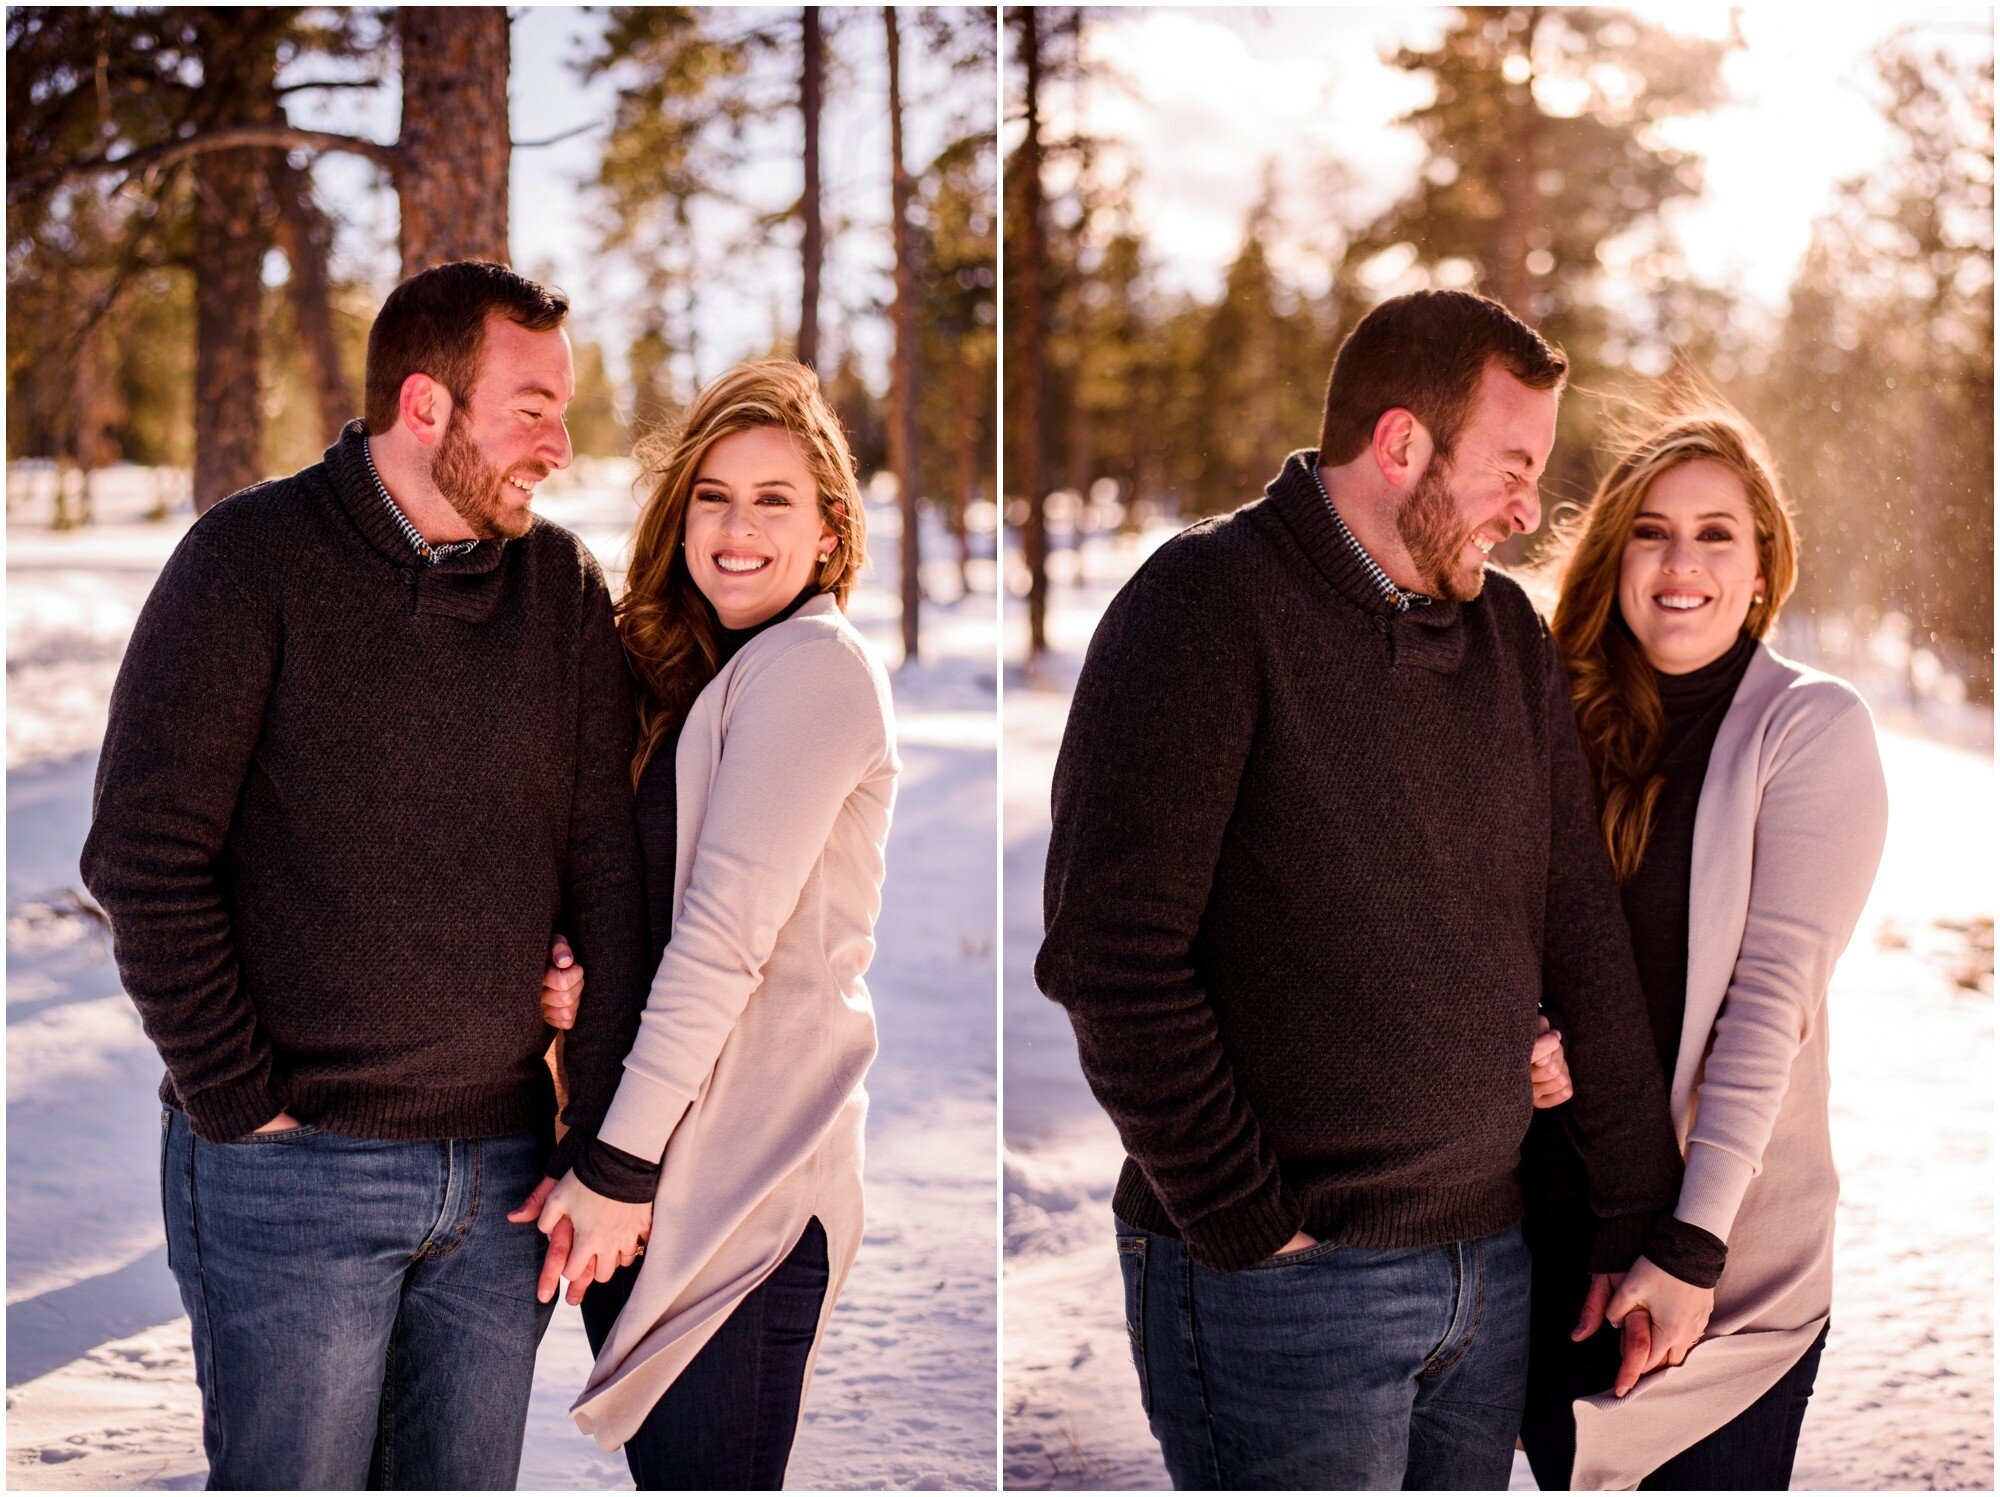 sunny winter engagement photos in mountains